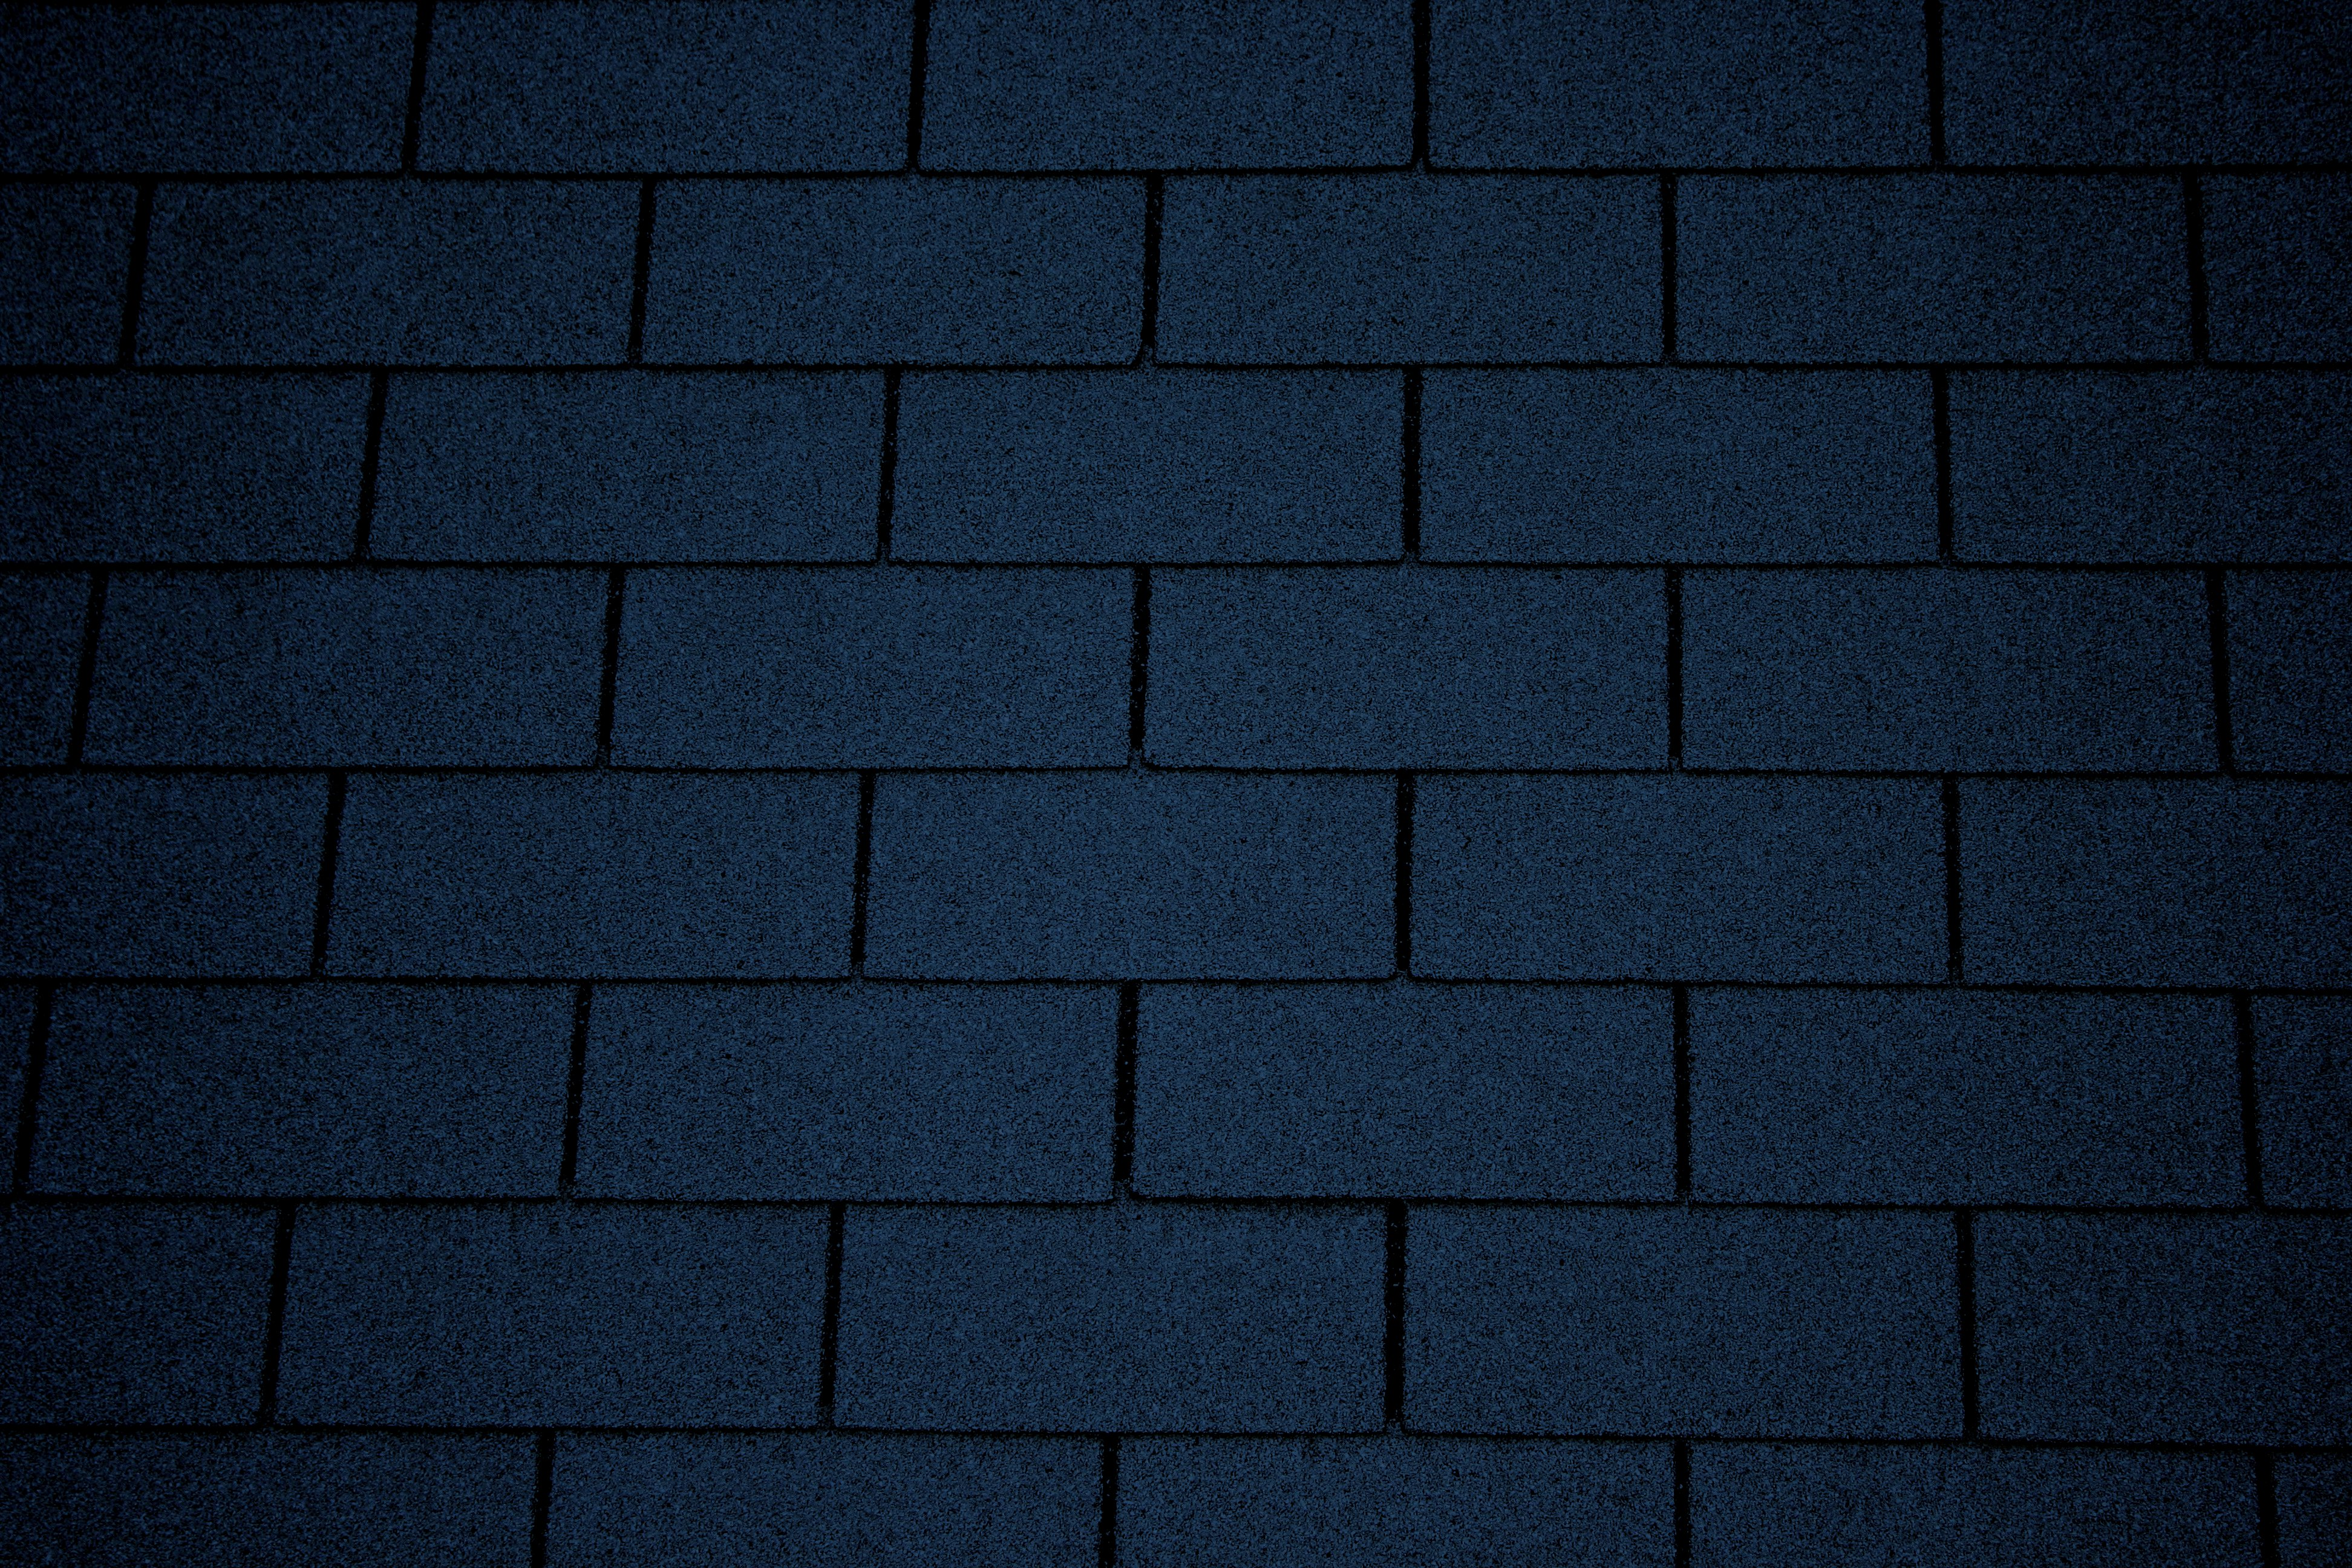 Dark blue asphalt roof shingles texture